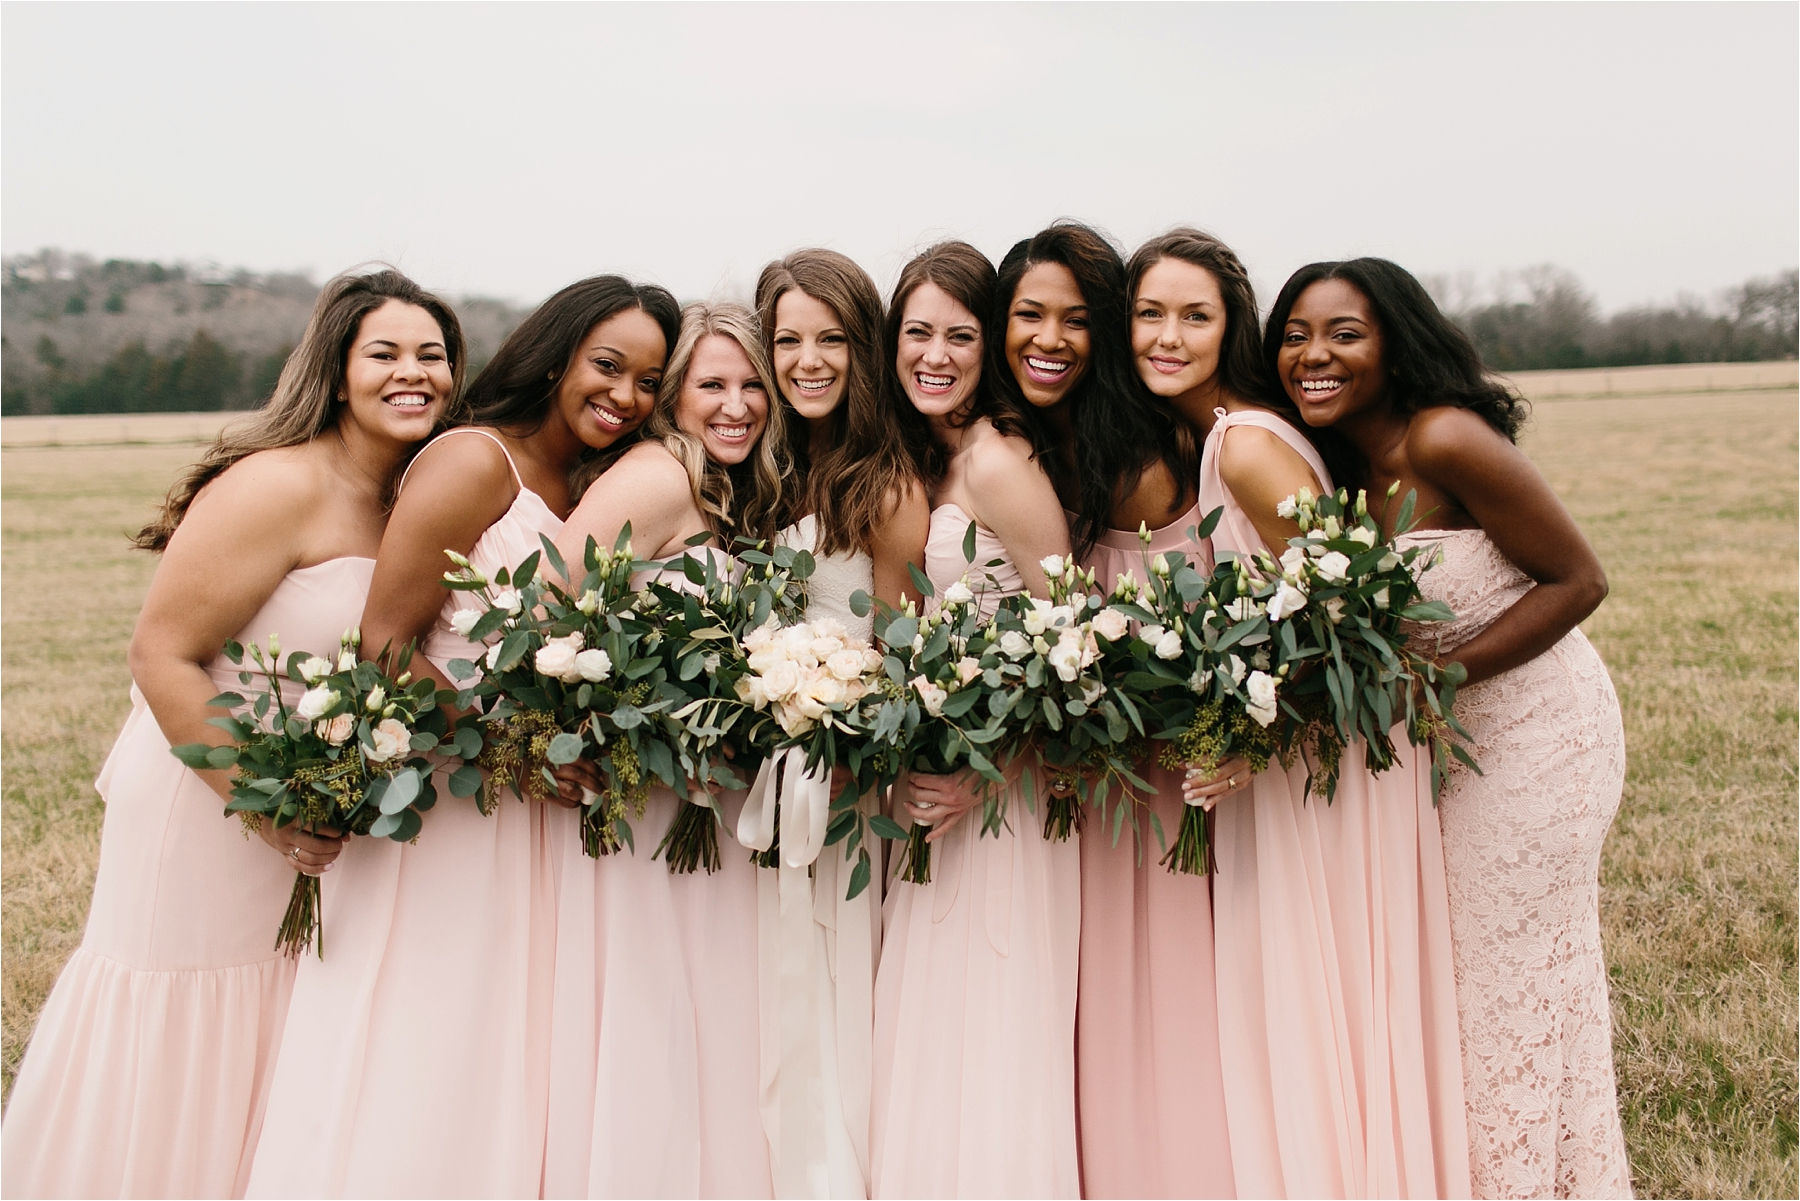 Lauren + Matt __ an intimate, emotional, blush pink, navy blue, and greenery toned wedding accents at the Brooks at Weatherford by North Texas Wedding Photographer Rachel Meagan Photography074